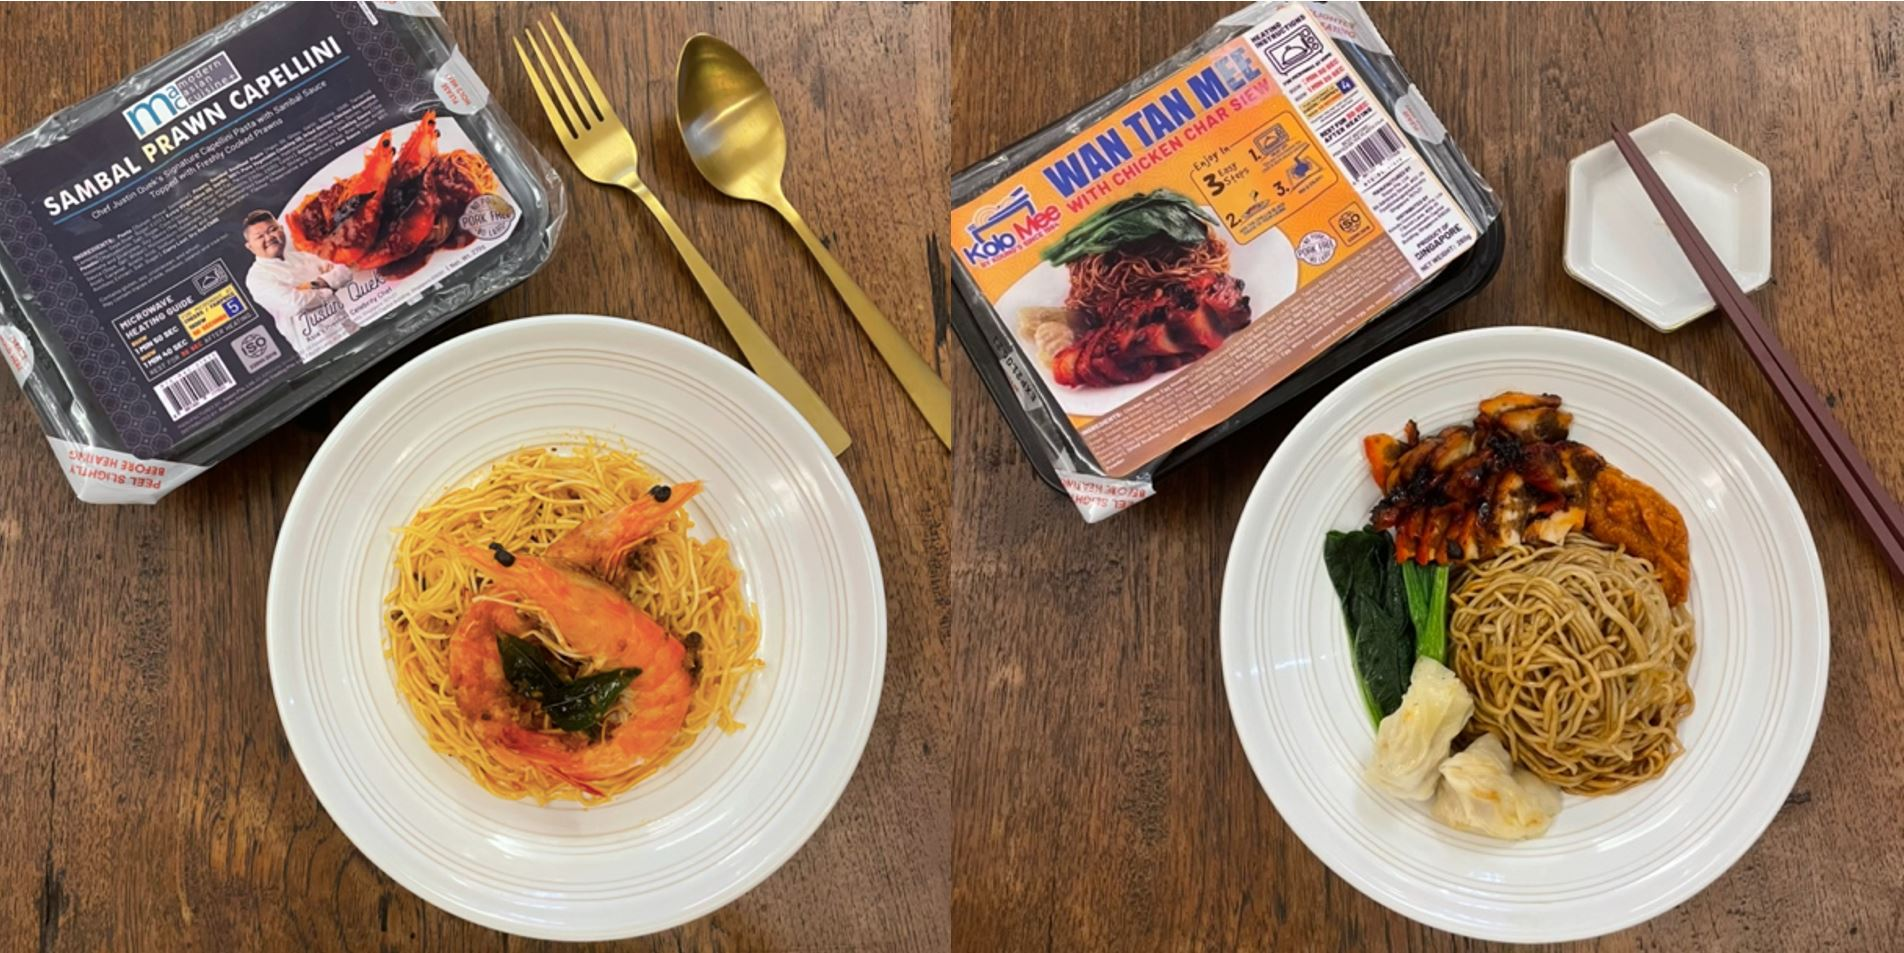 Chef Justin Quek's premium ready-to-eat meals now exclusively available at Cheers & FairPrice Xpress